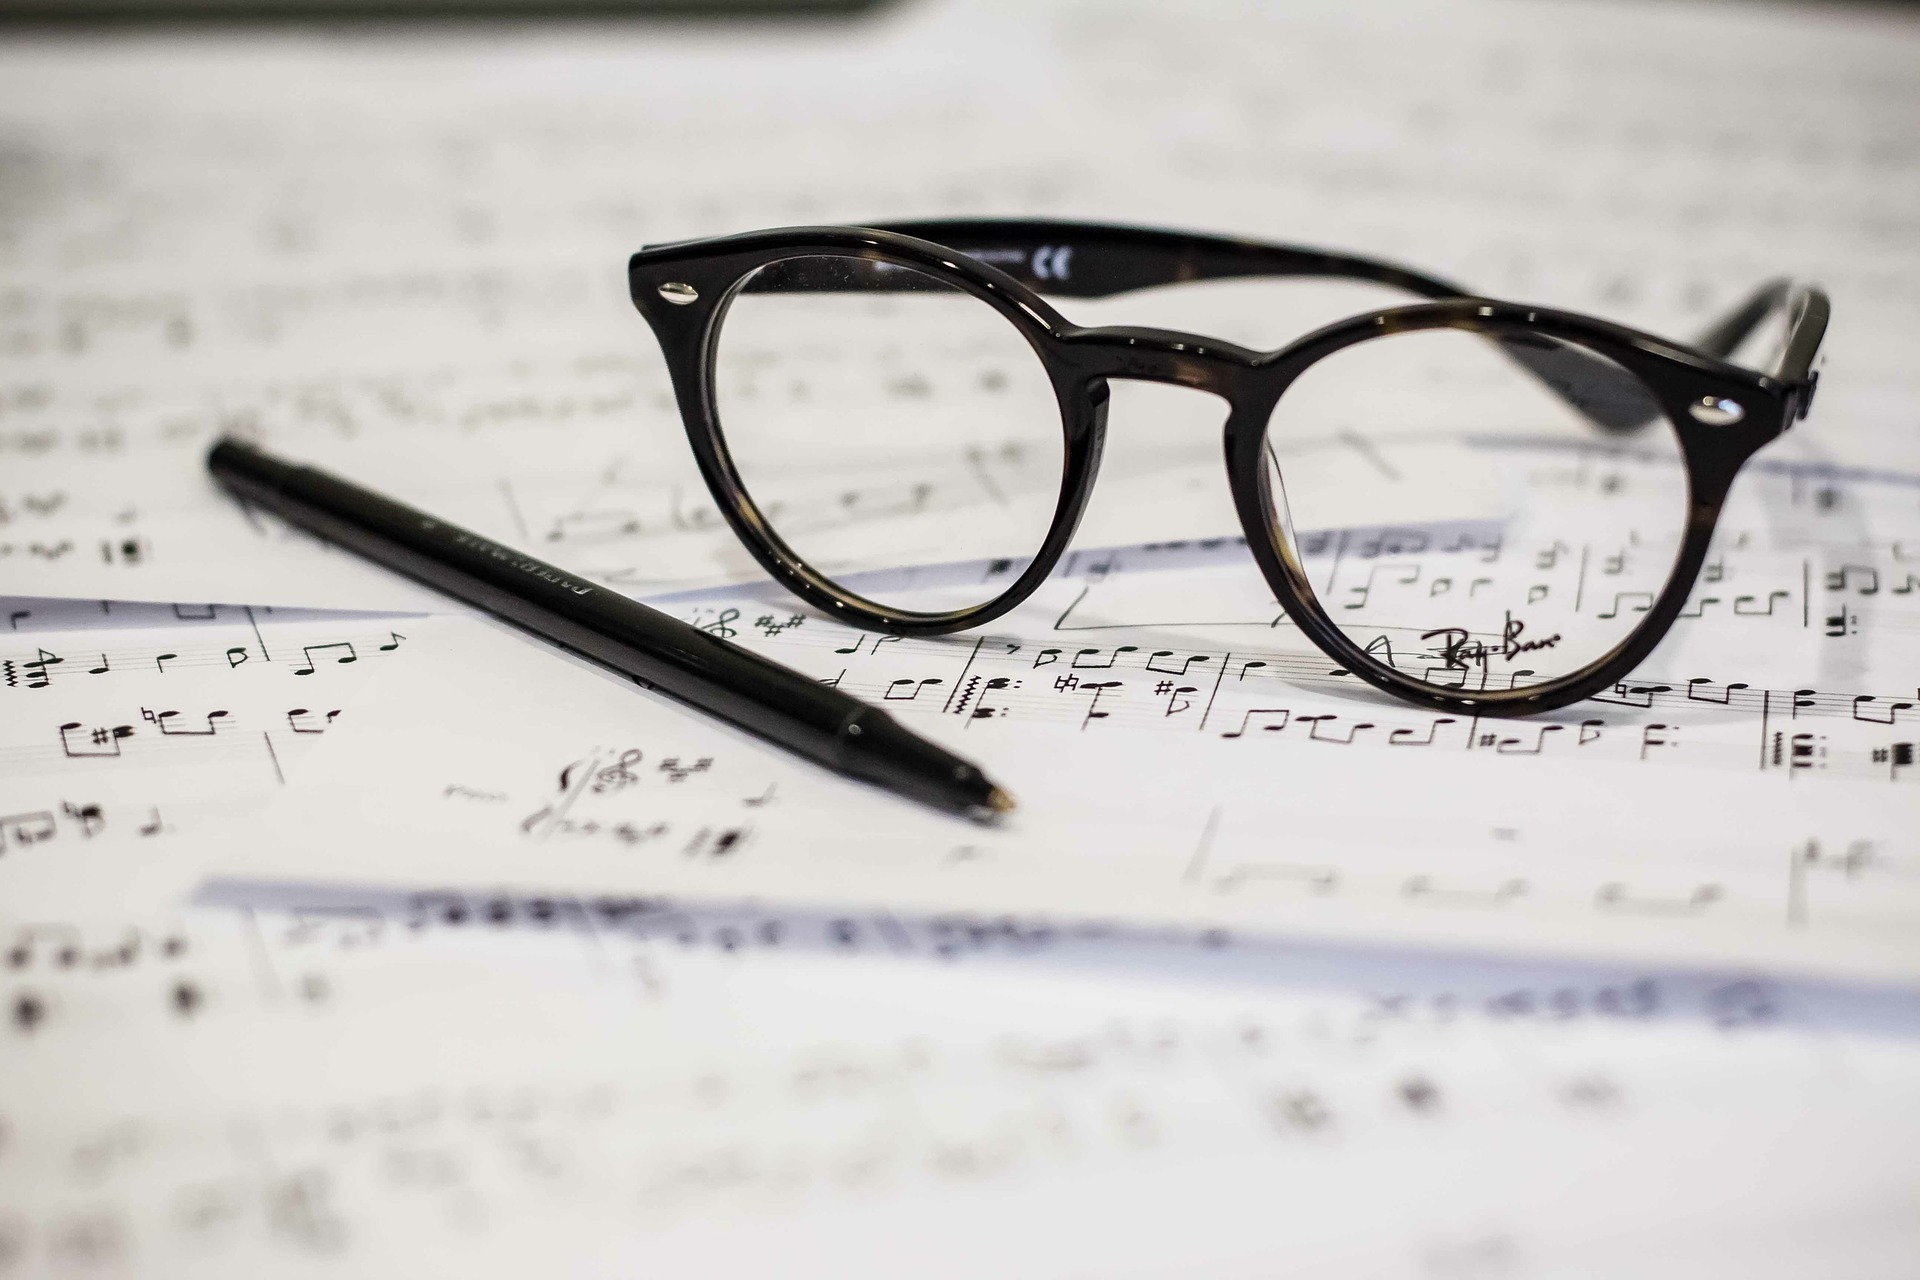 11 songwriting mistakes - by Andy Piercy